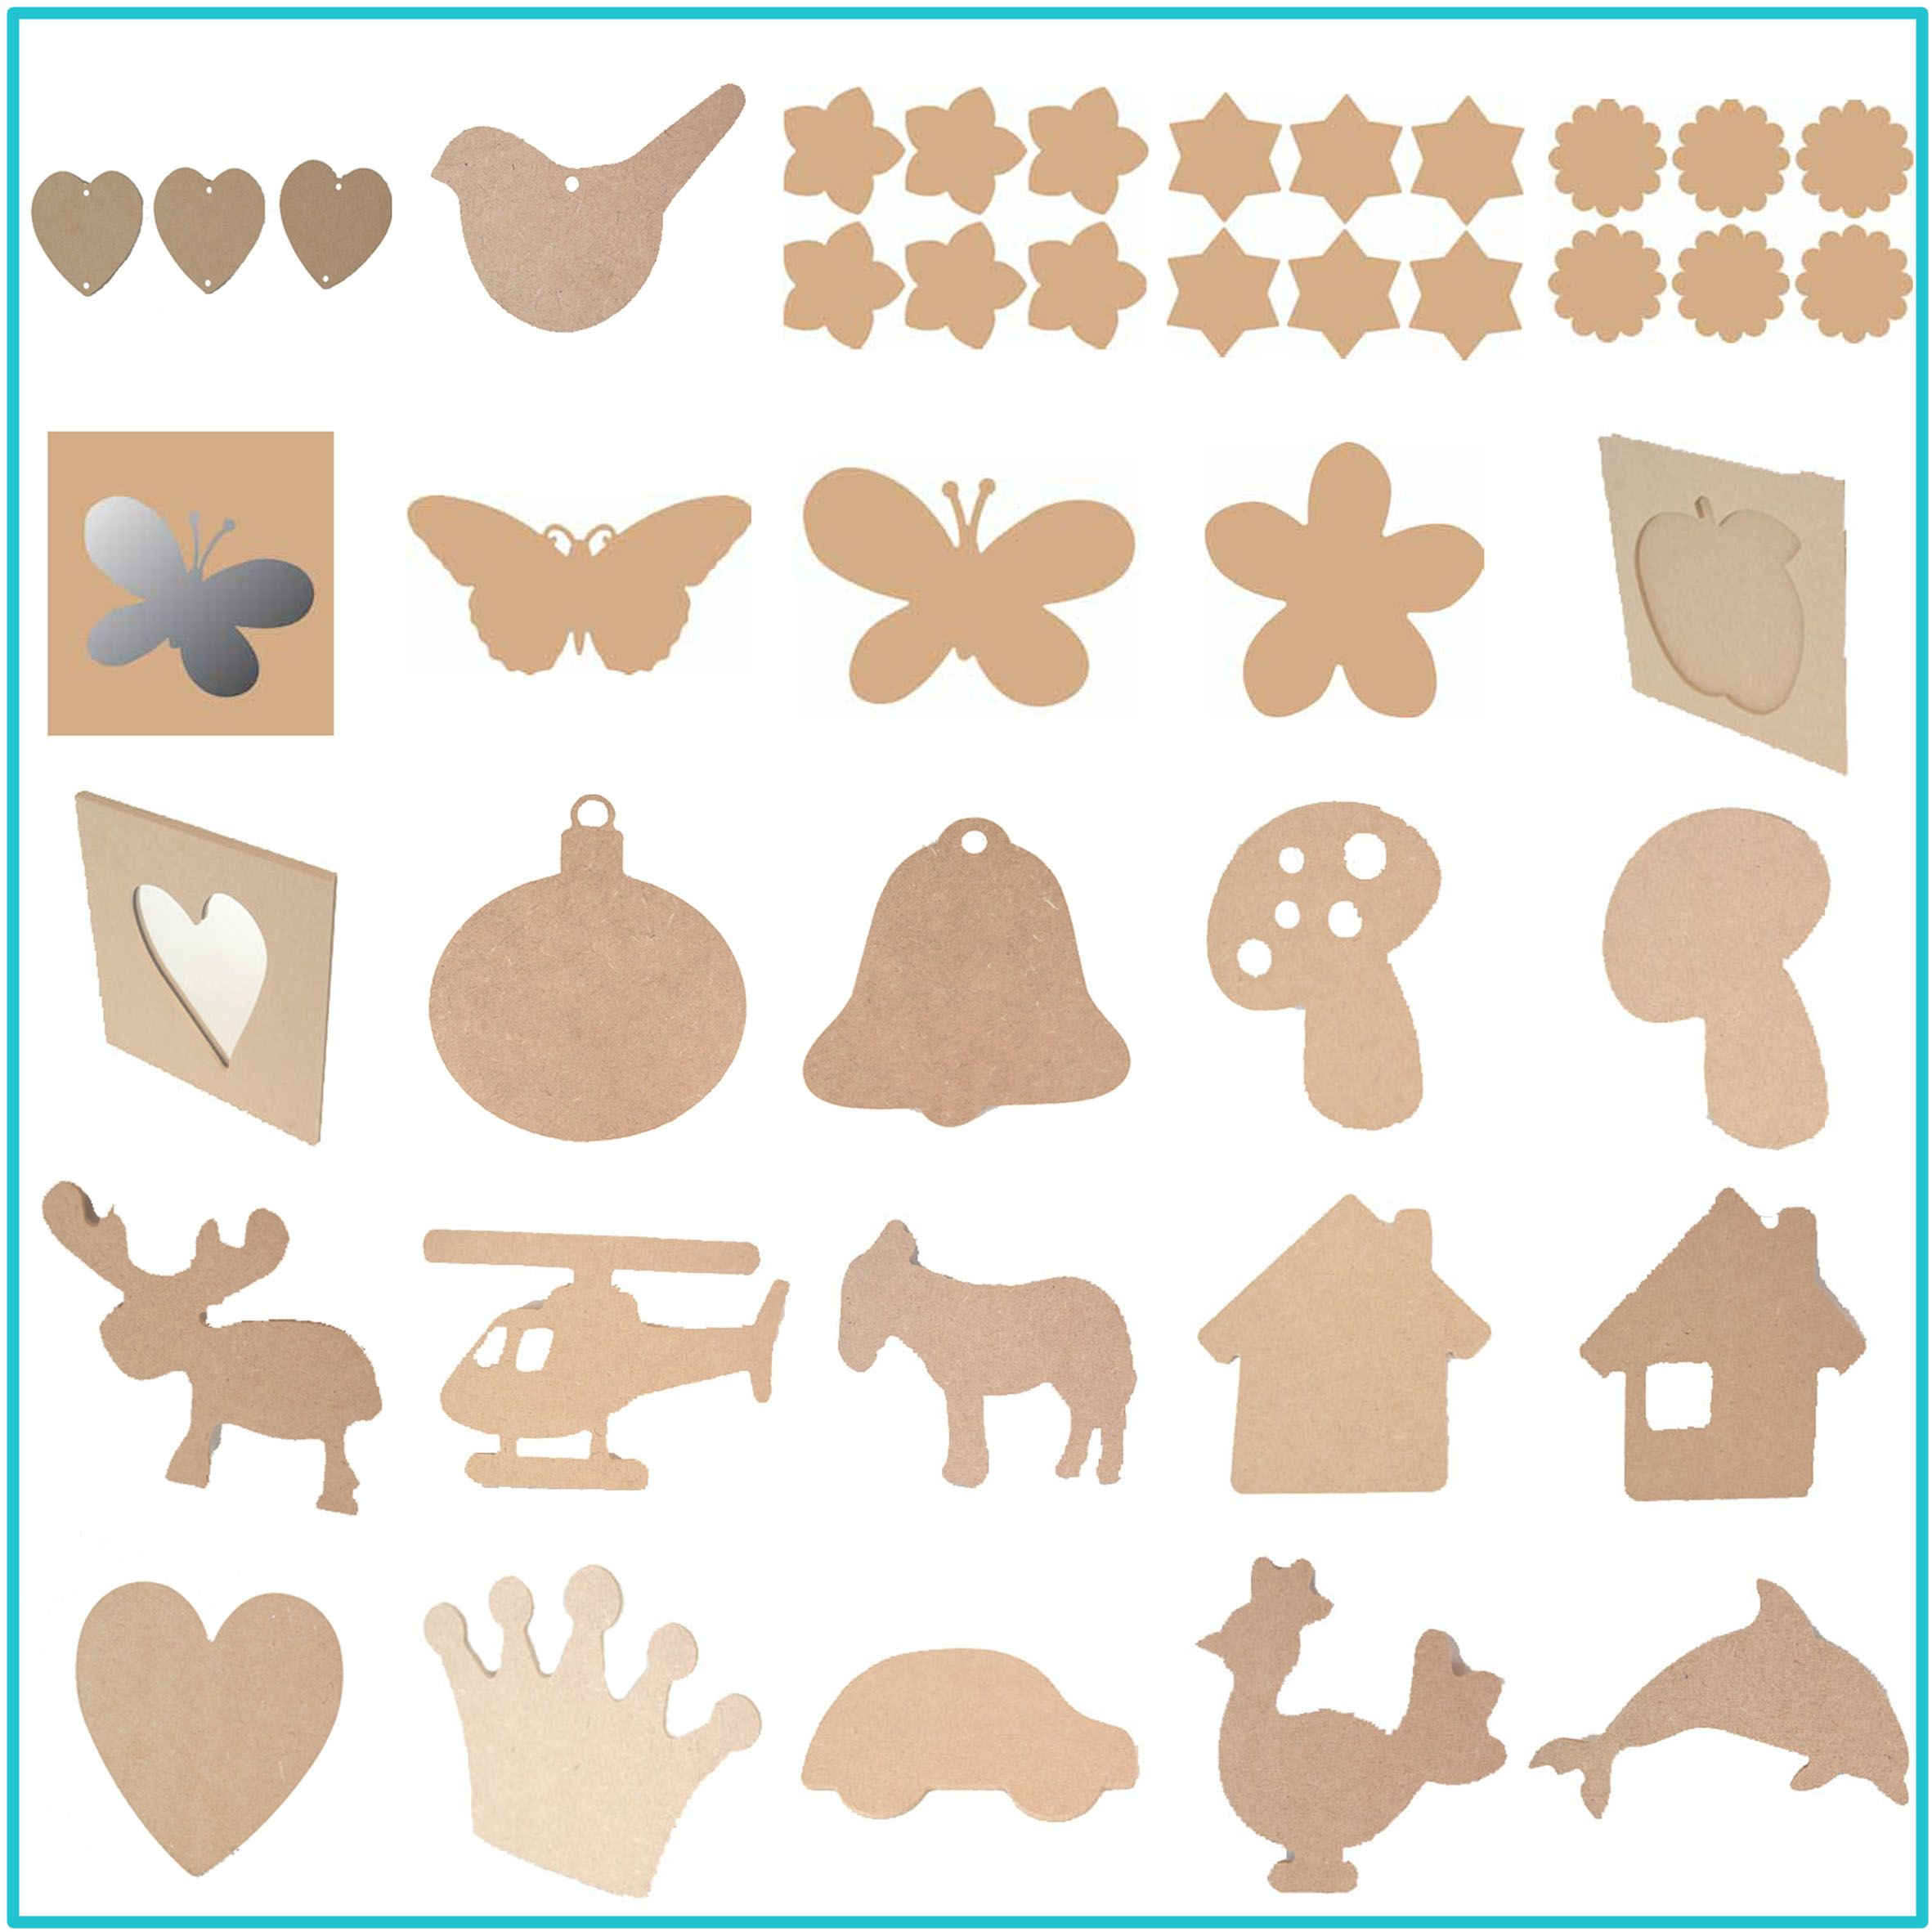 Lots of wood shapes ready to paint decoupage or embellish